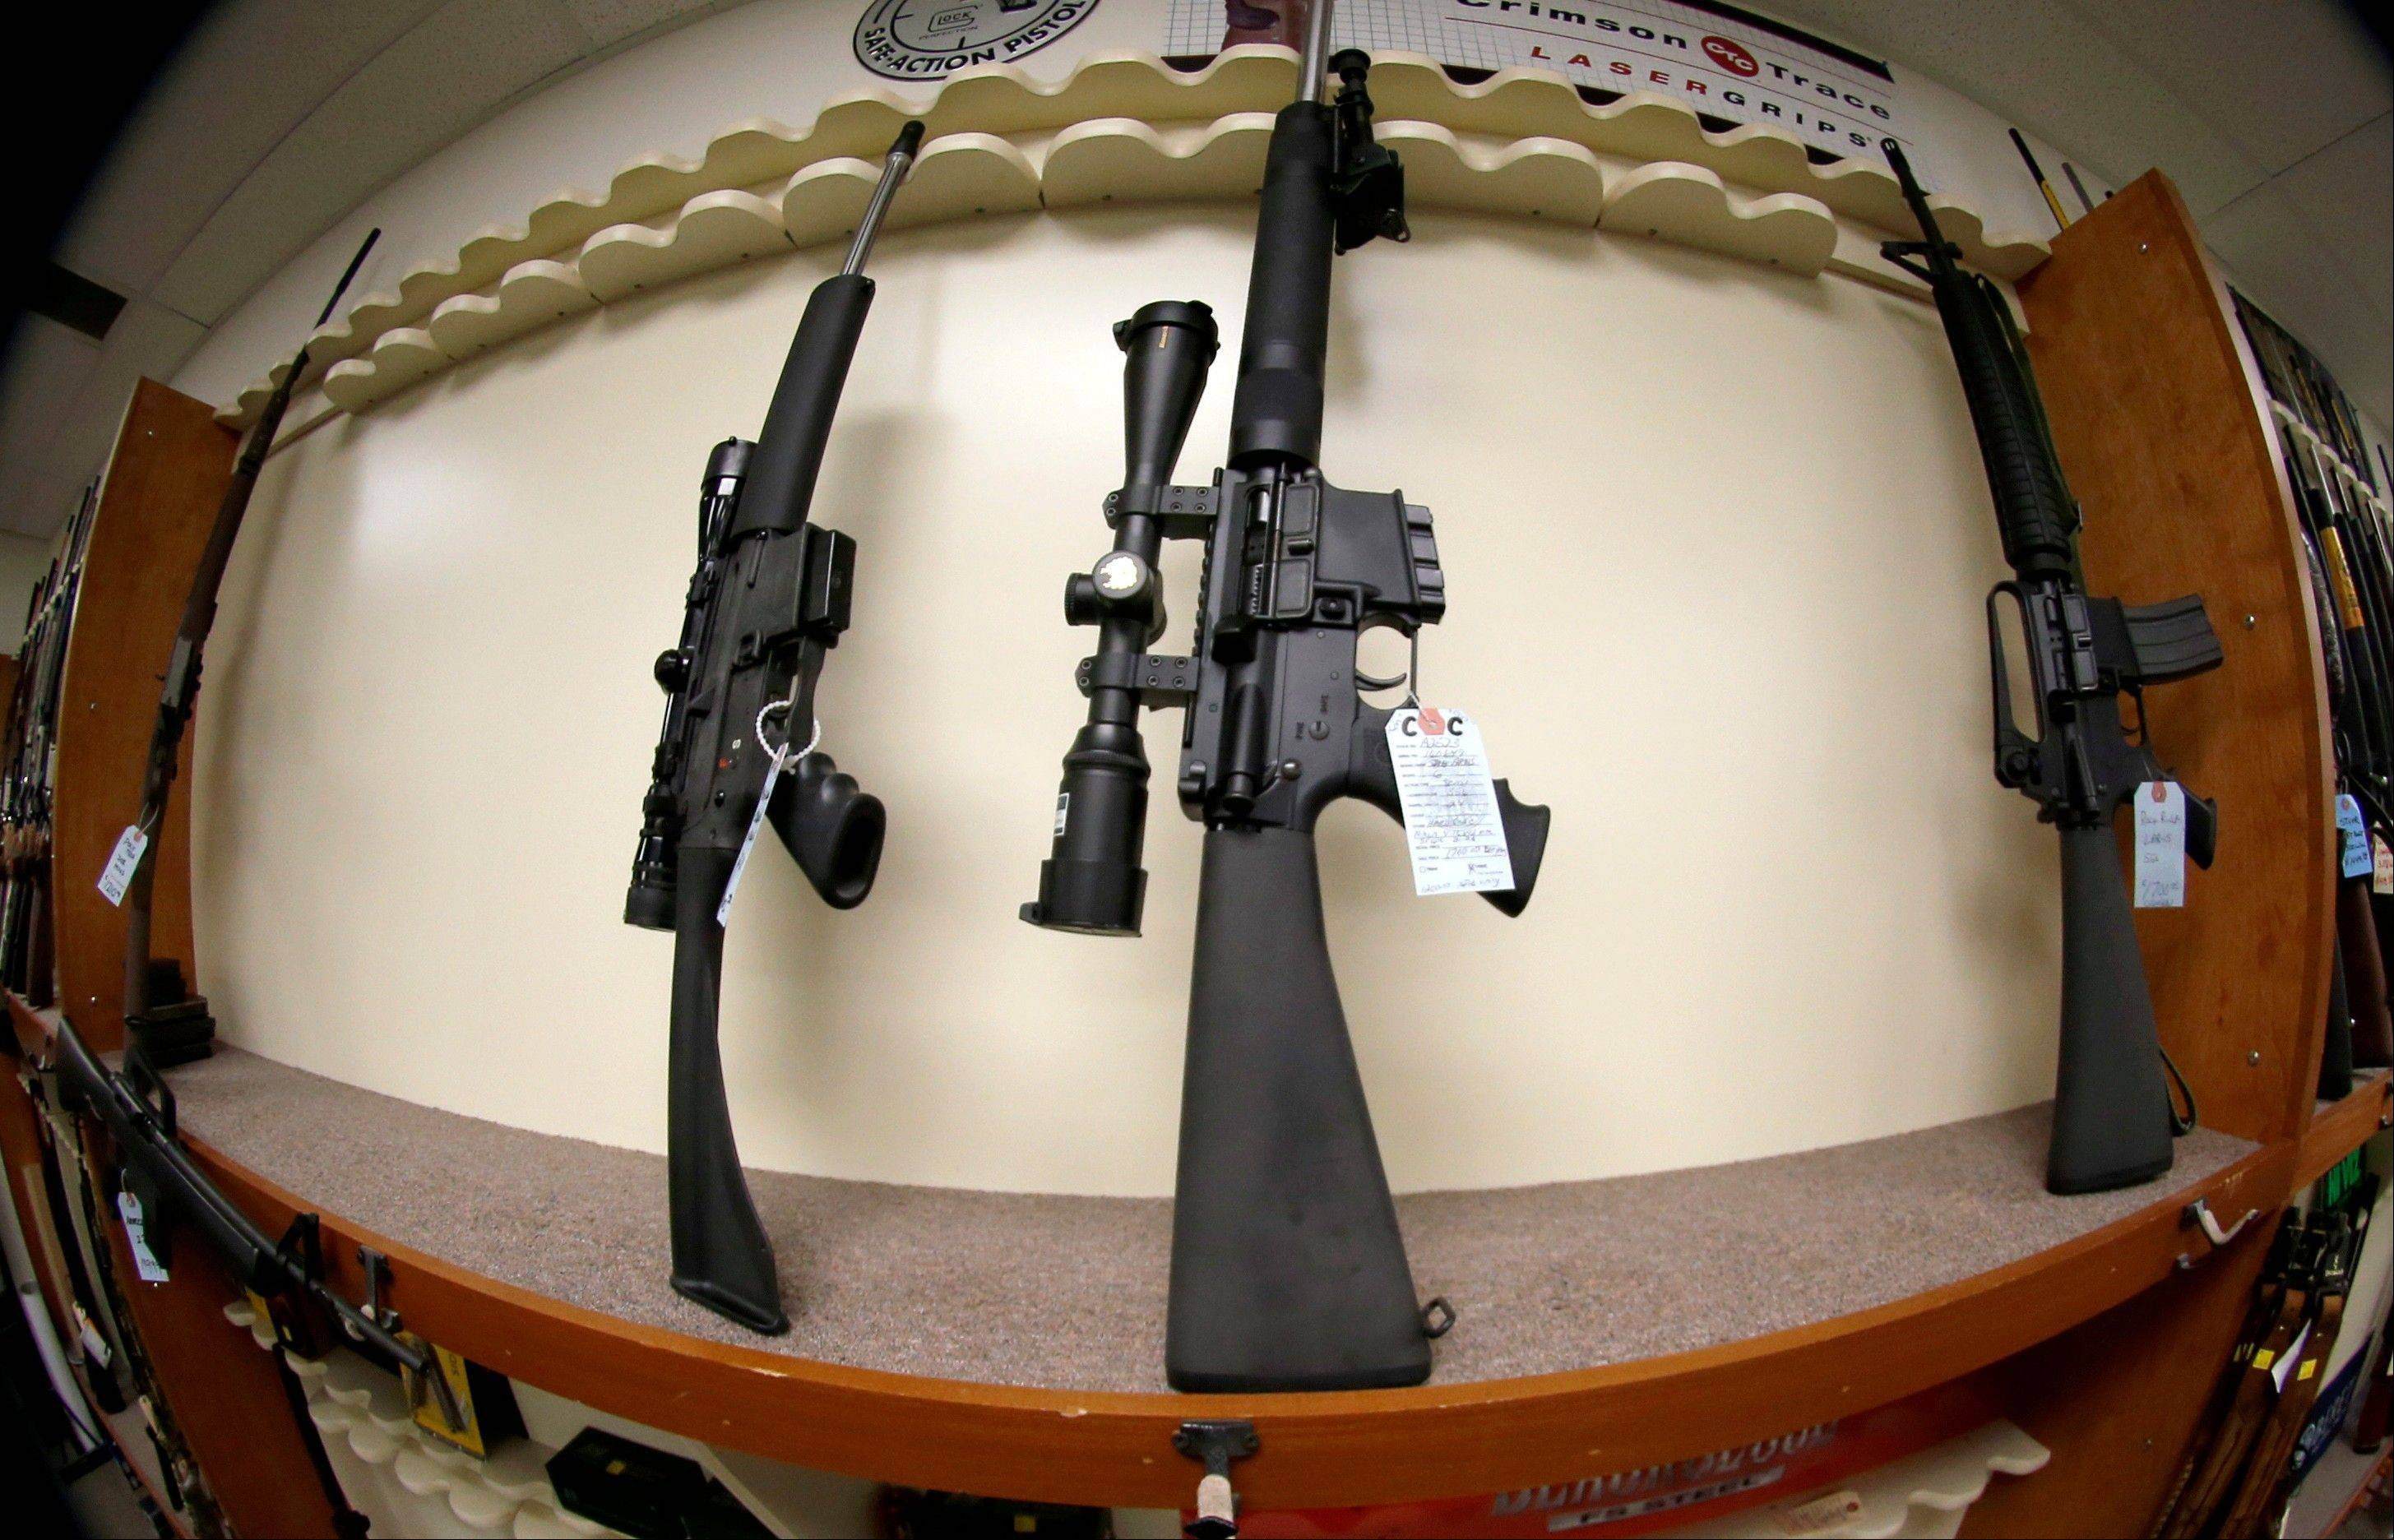 Highland Park sued over assault weapons ban